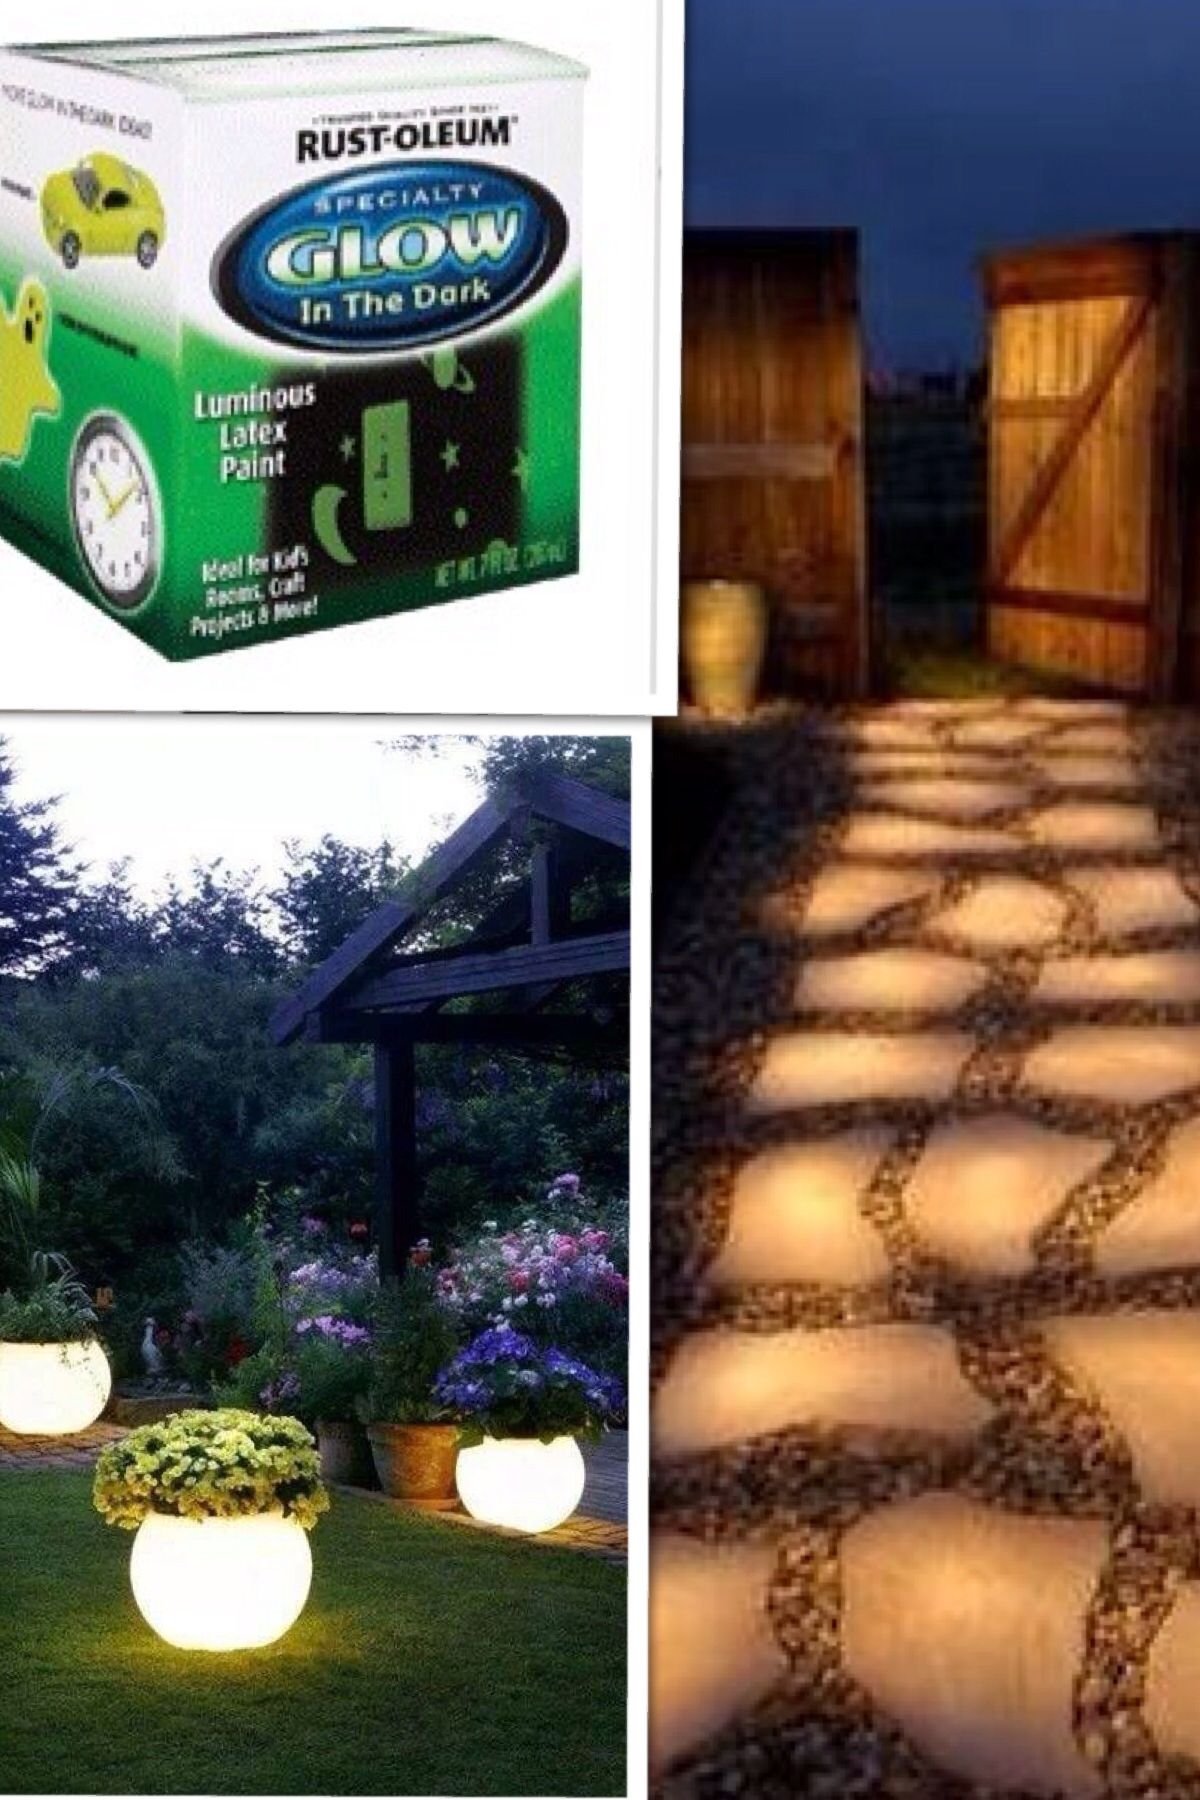 Rustoleum Outdoor Glow In The Dark Paint Party Ideas In 2019